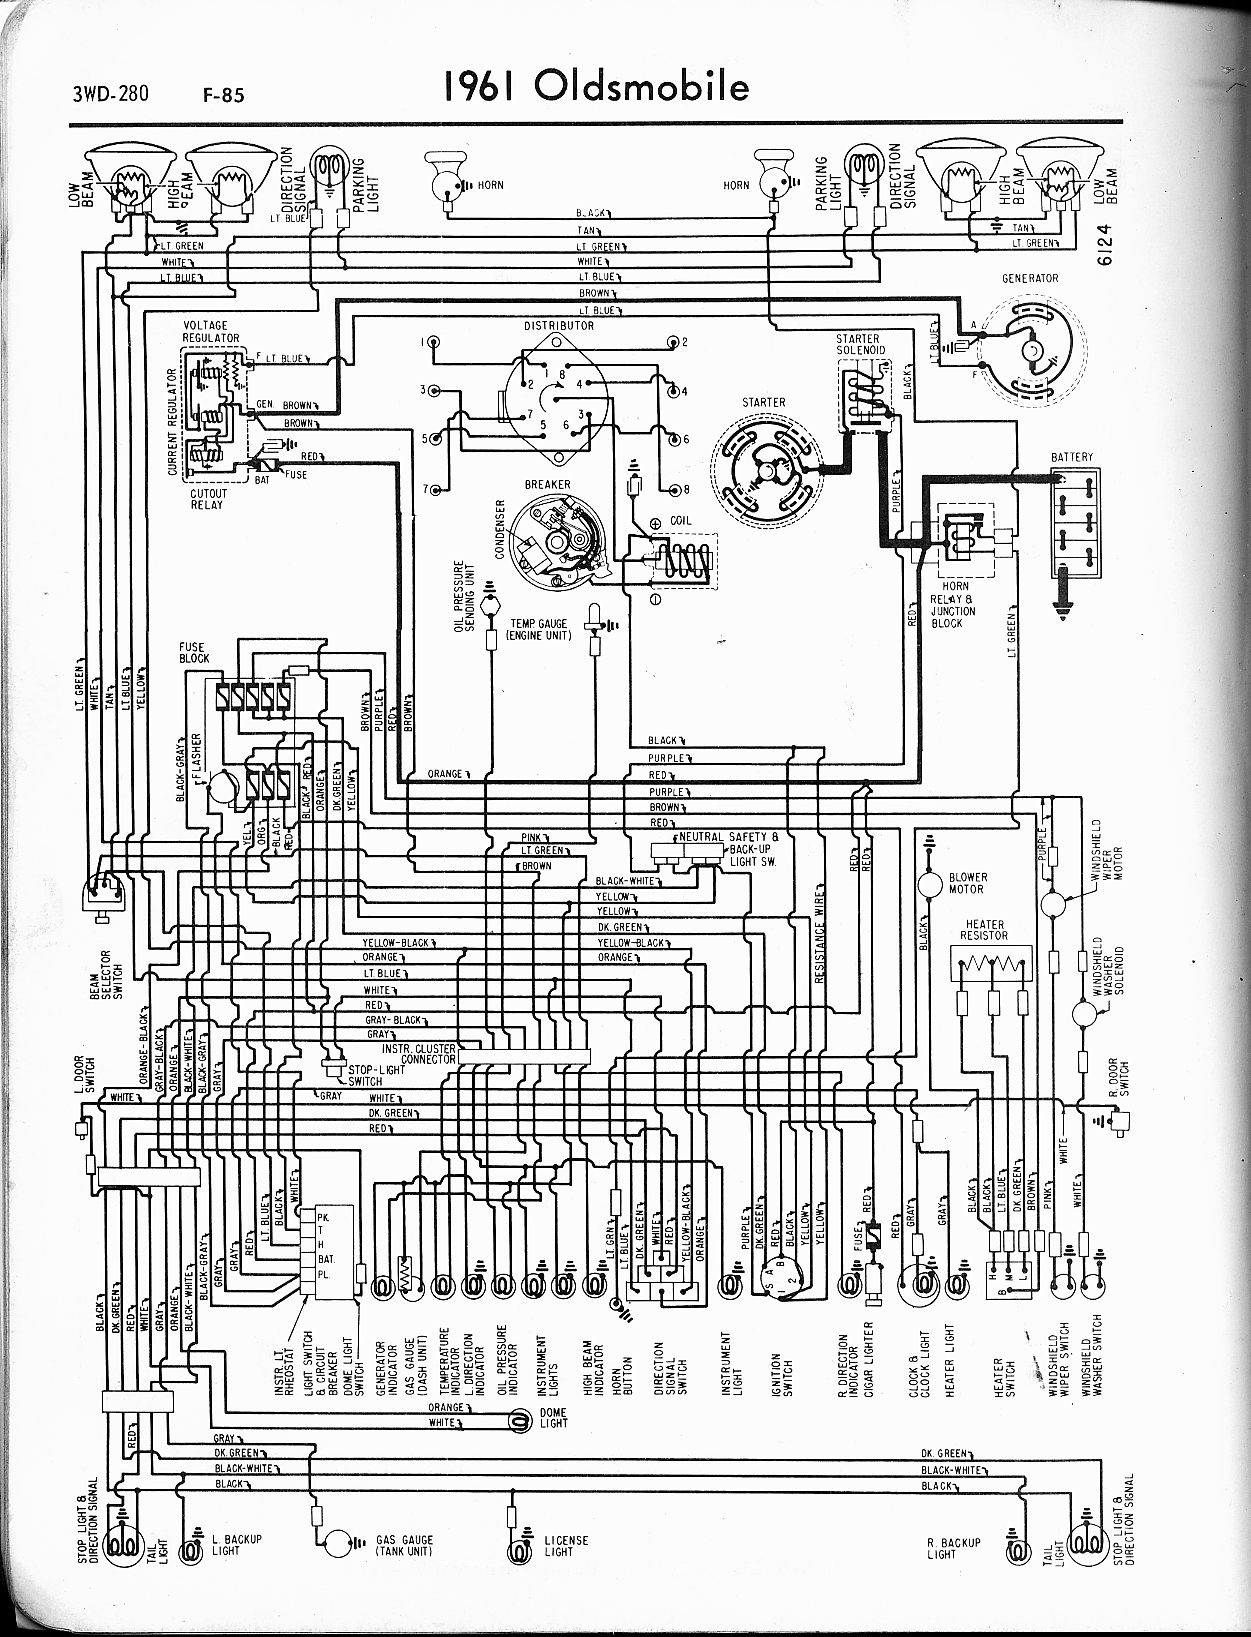 Oldsmobile wiring diagrams the old car manual project 1961 f 85 cheapraybanclubmaster Choice Image